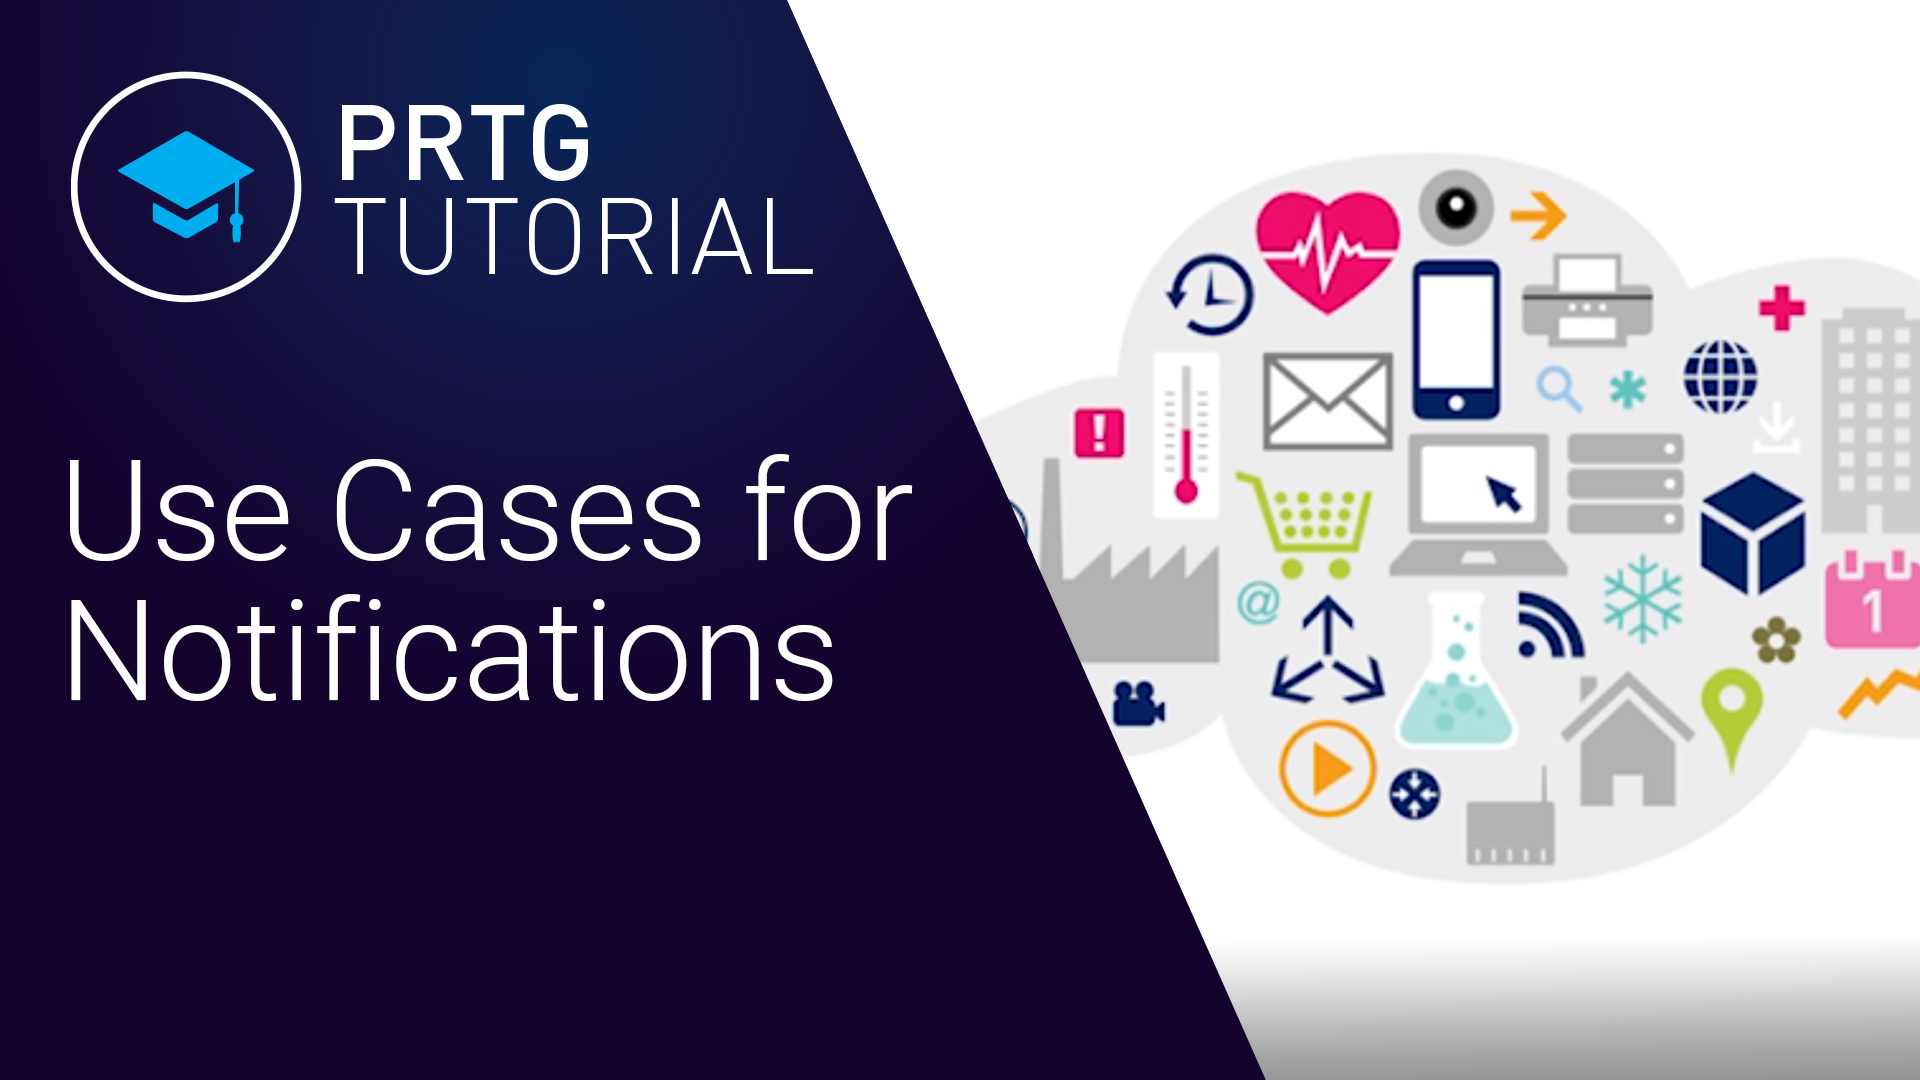 Video: PRTG Network Monitor - Use cases for notifications (Videos, Notifications, Setup)